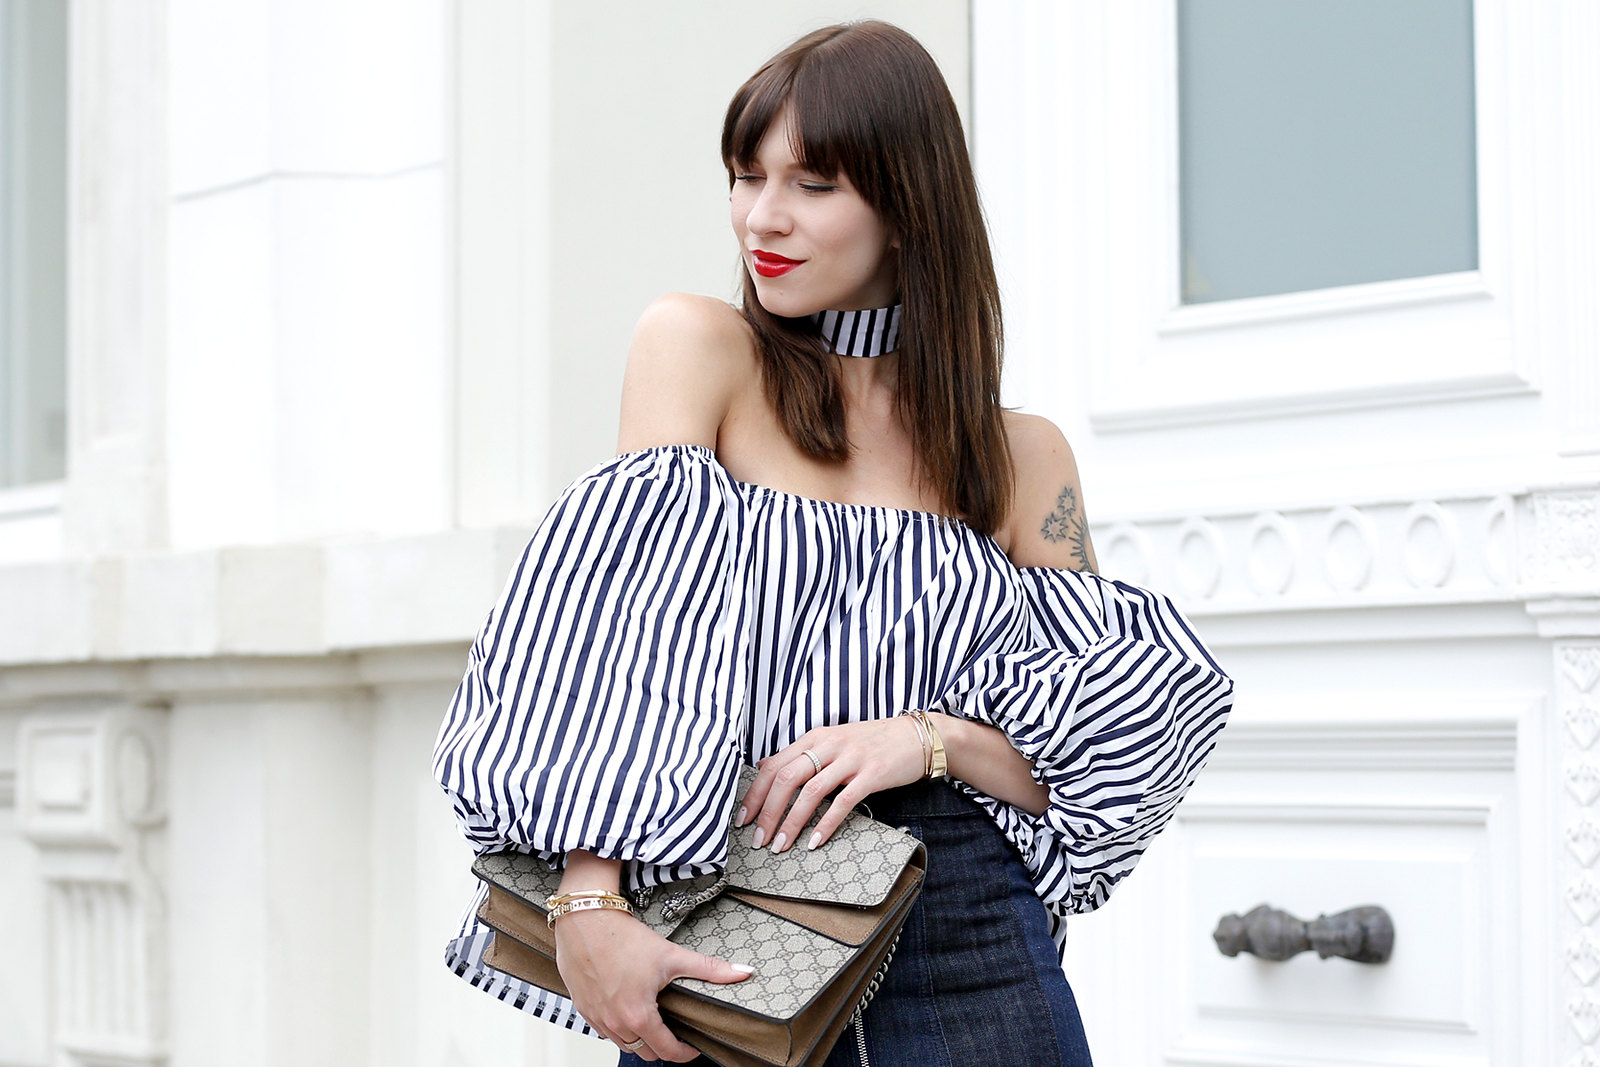 ootd outfit potd lookbook storets off shoulder stripe blouse chic mini denim skit seventies gucci dionysus bag luxury blogger fashionblog cats & dogs modeblogger berlin ricarda schernus dusseldorf fashionblog 1